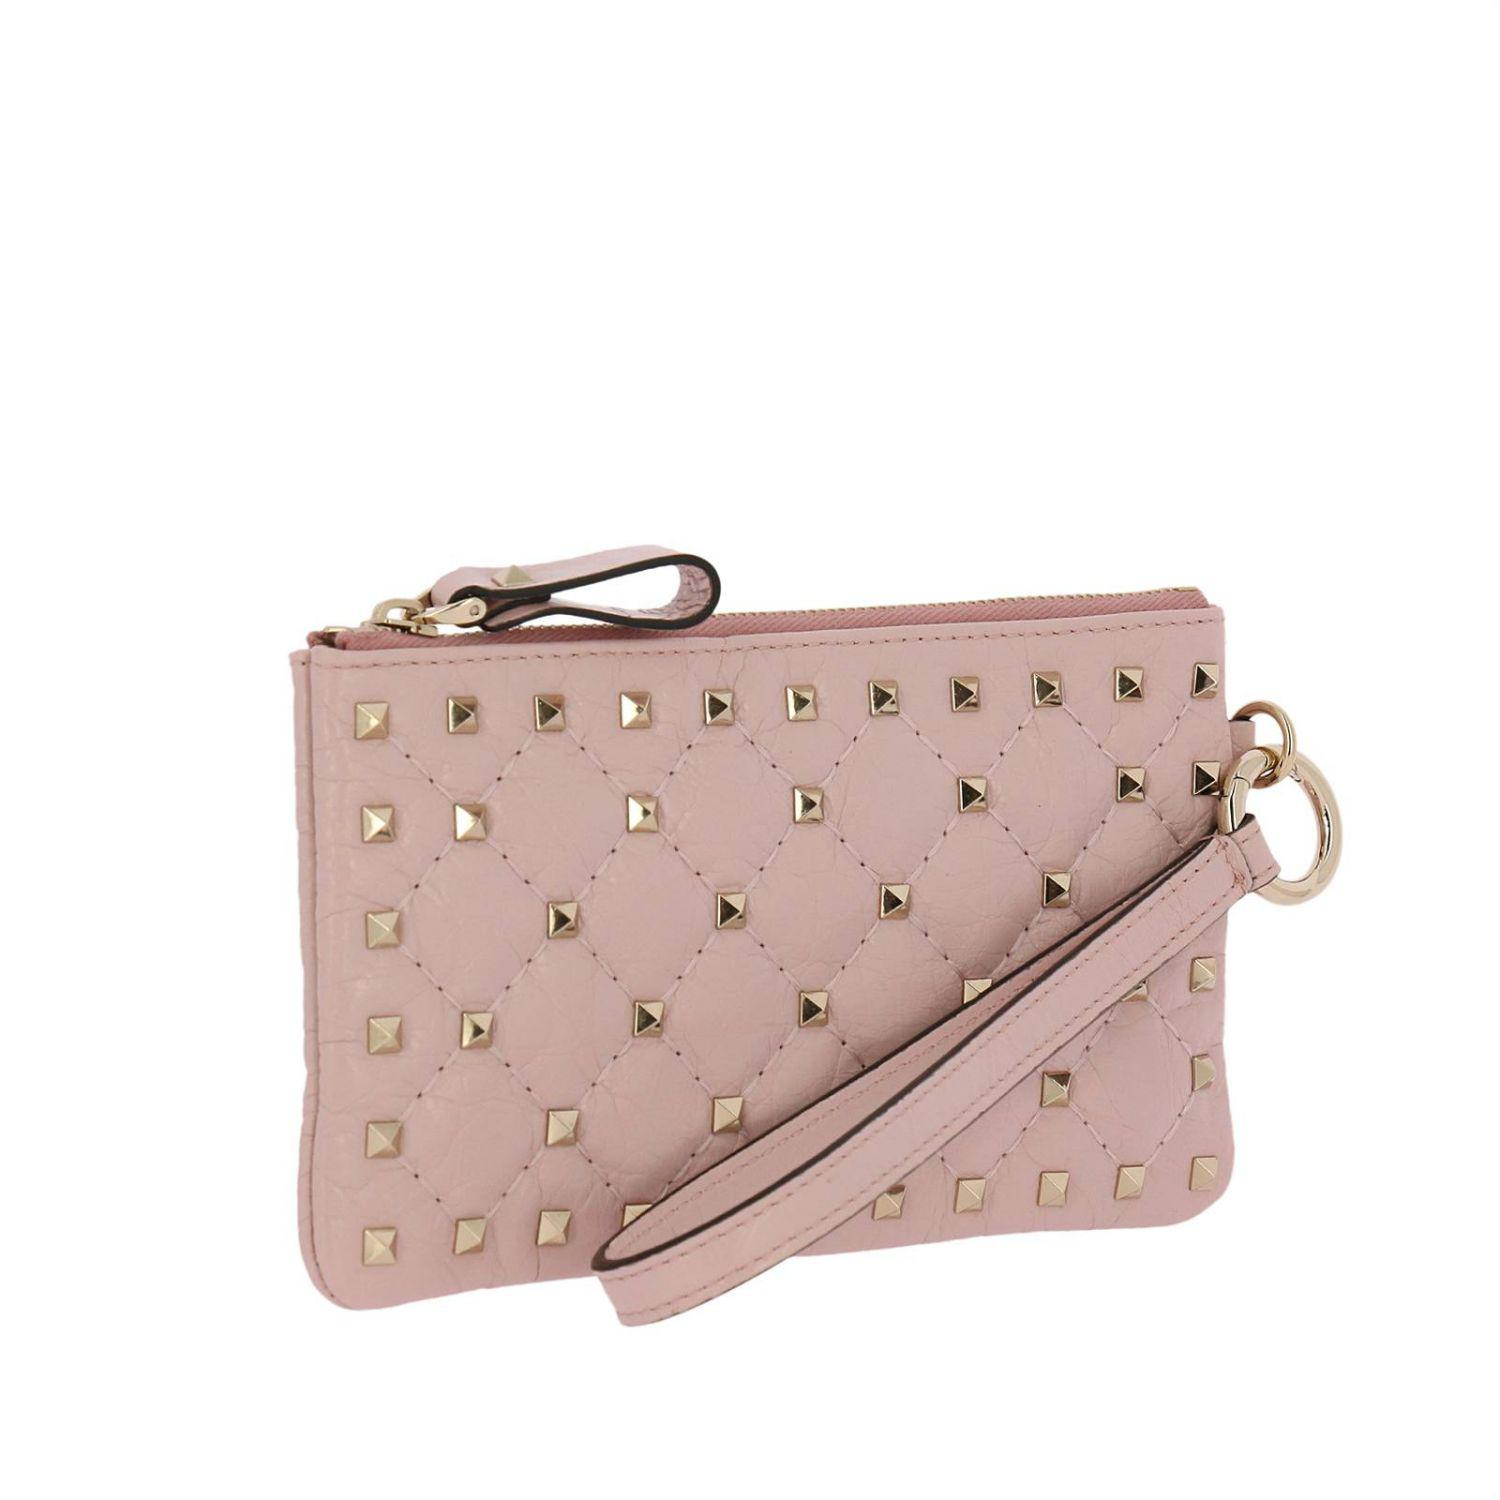 d060524a9 ... Valentino Rockstud Spike Mini Clutch Bag In Quilted Nappa Leather With  Metal Studs. View fullscreen